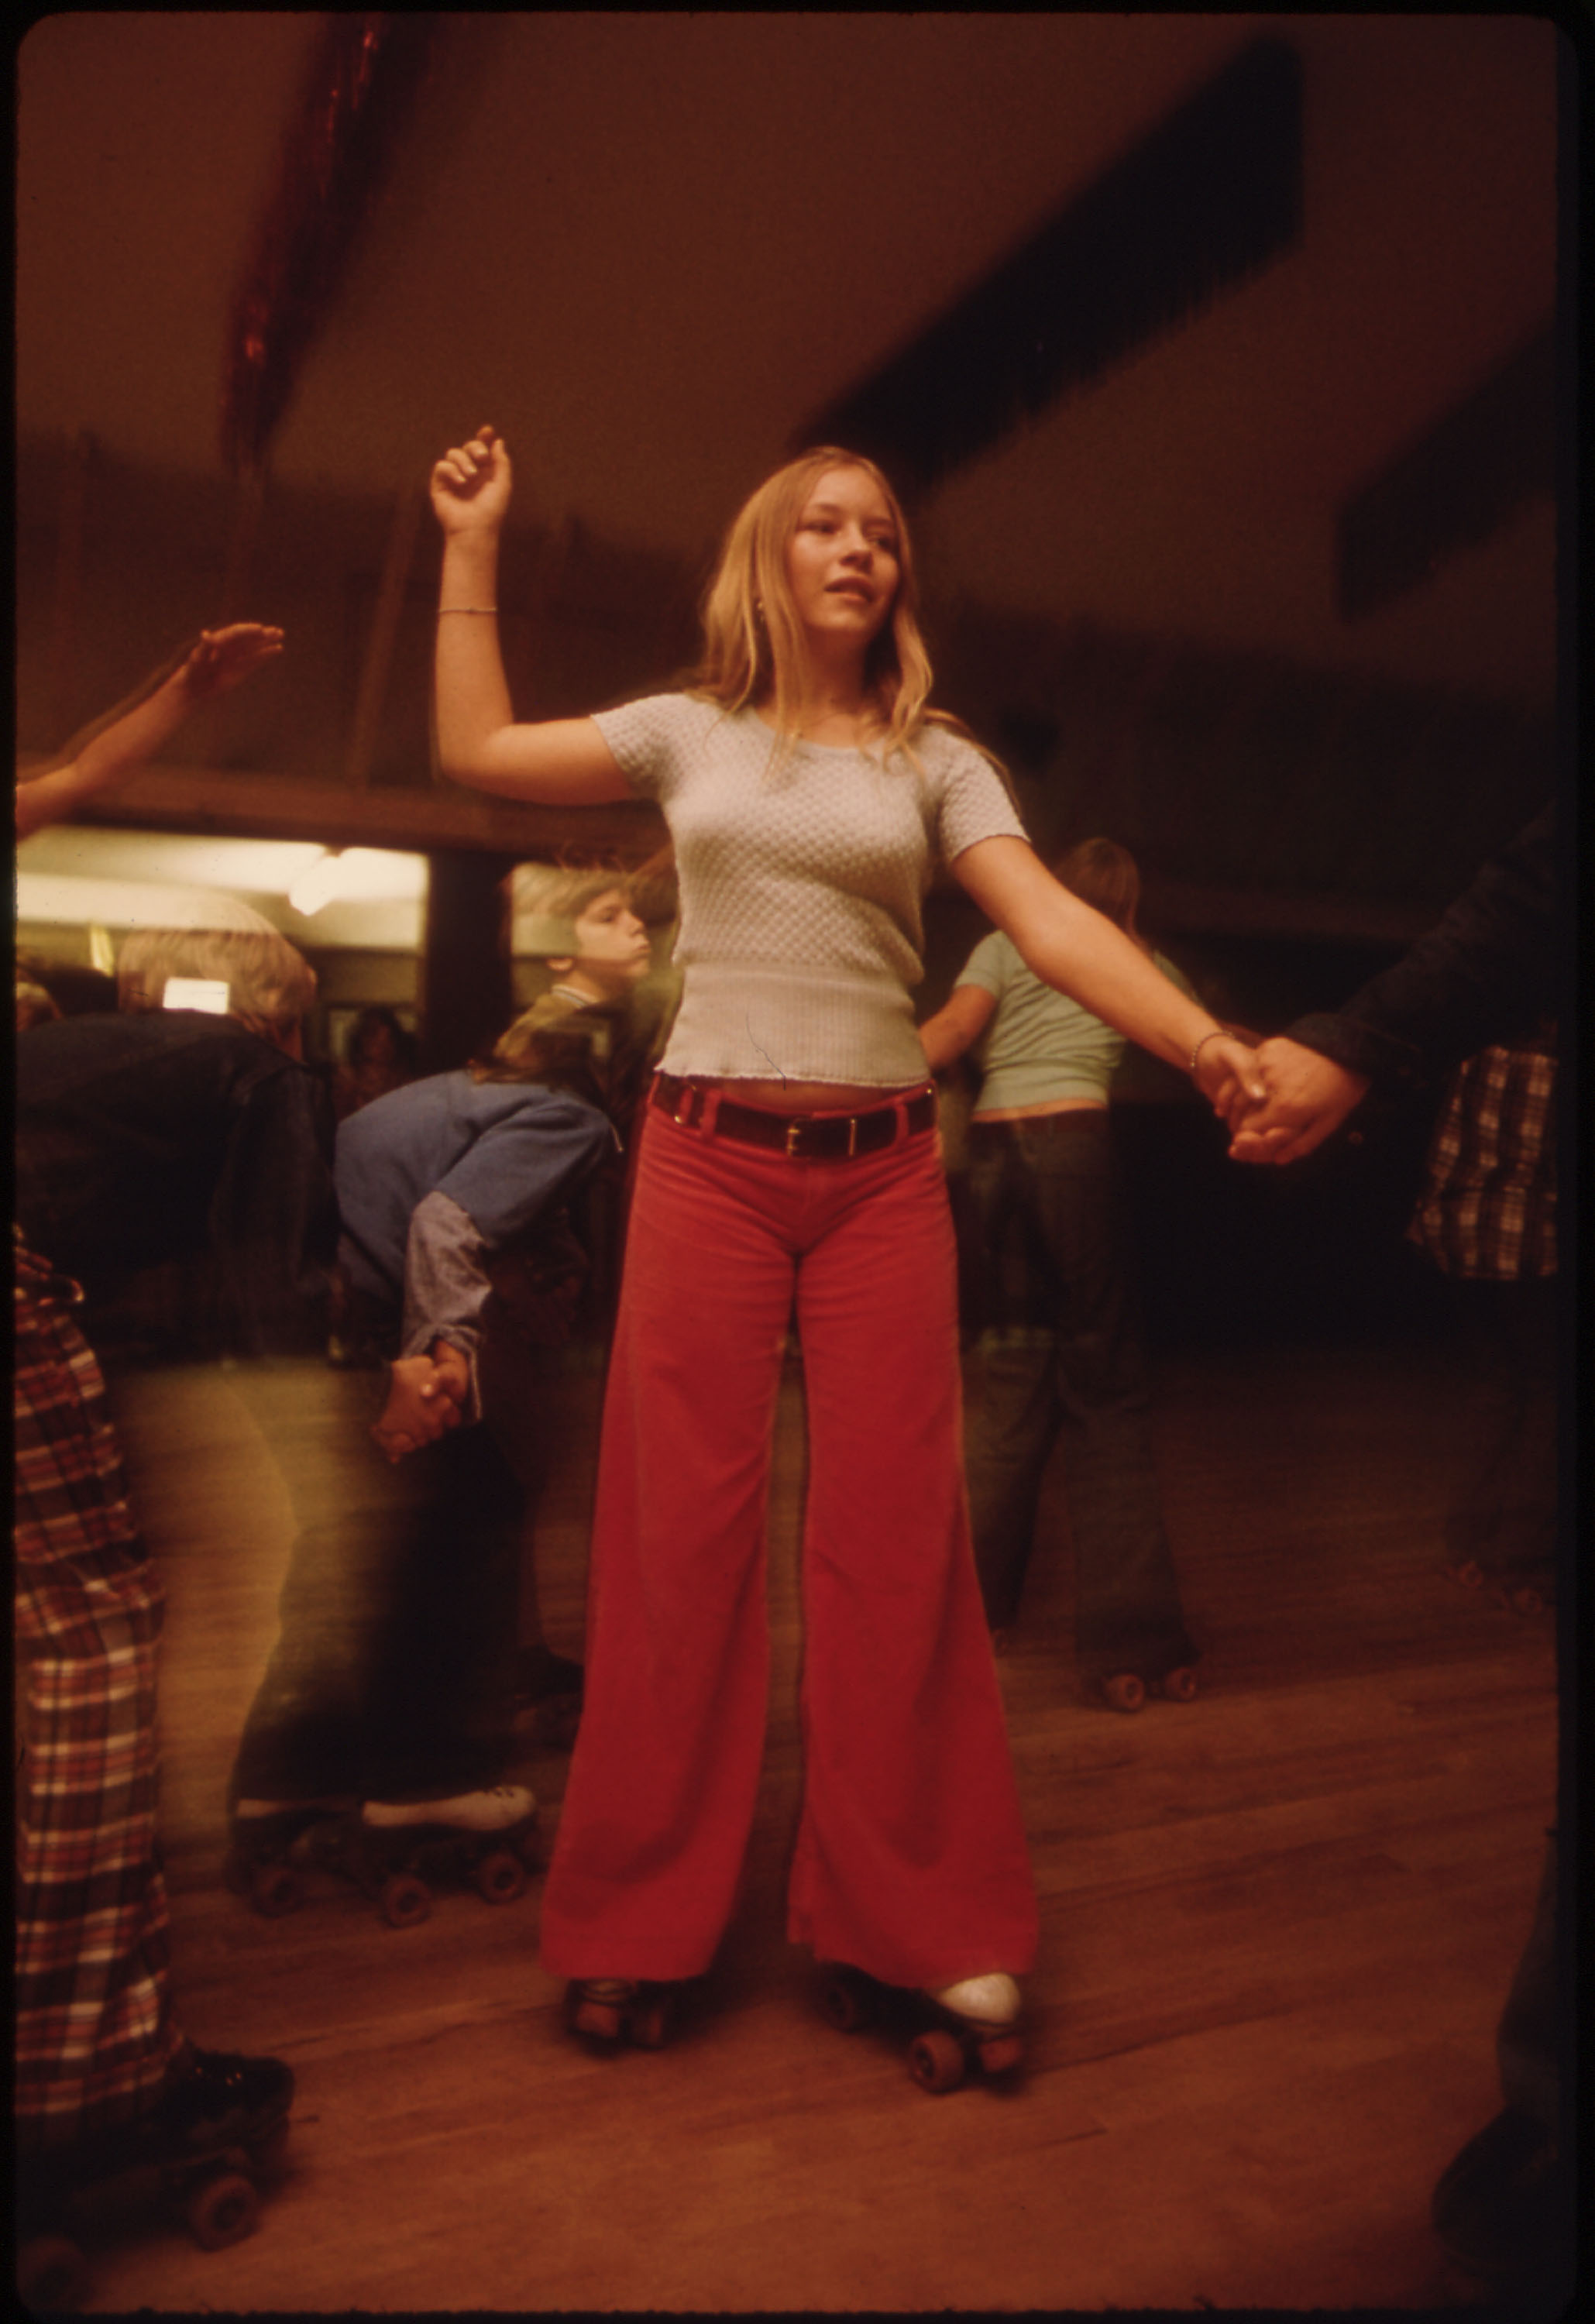 Young Boomer or Older Gen-Xer at a roller rink in 1975